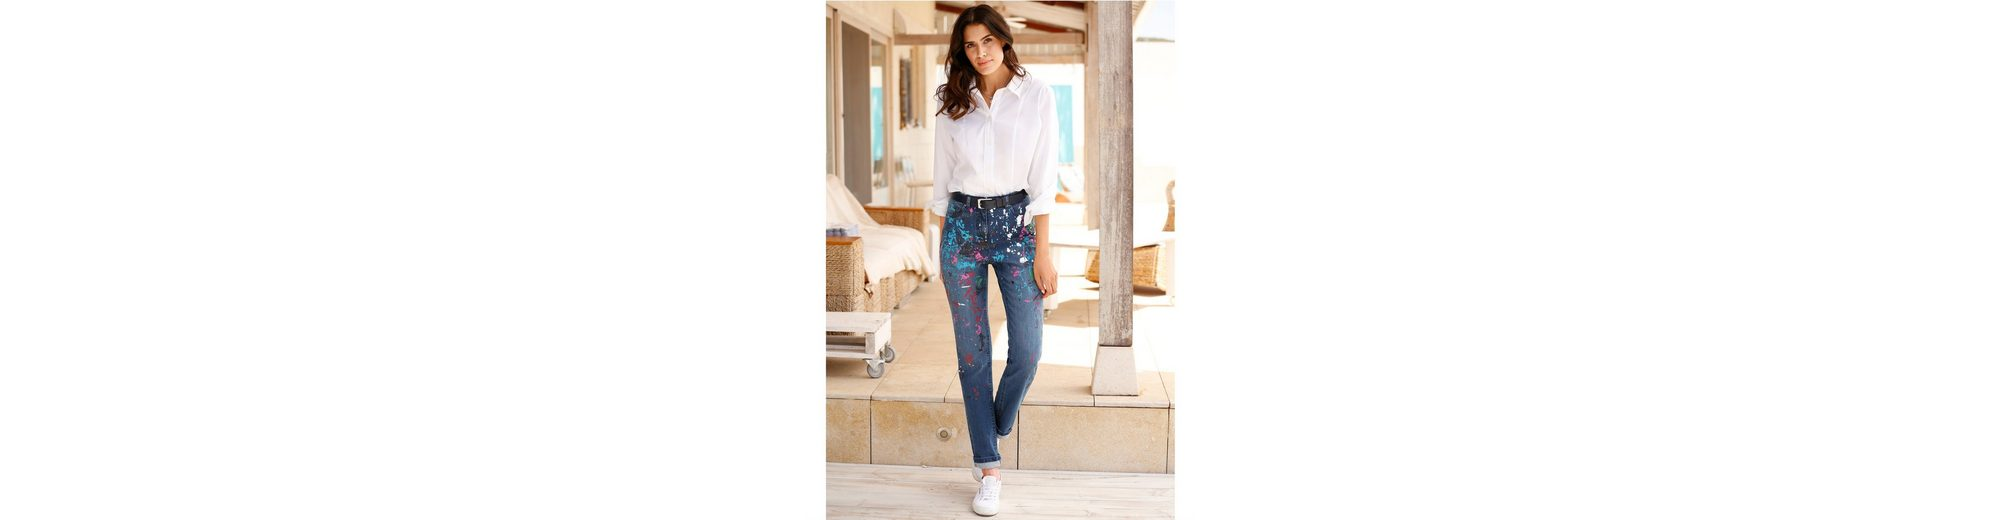 Dress Dress slim In Jeans In Paola Paola Jeans qxfvxtR